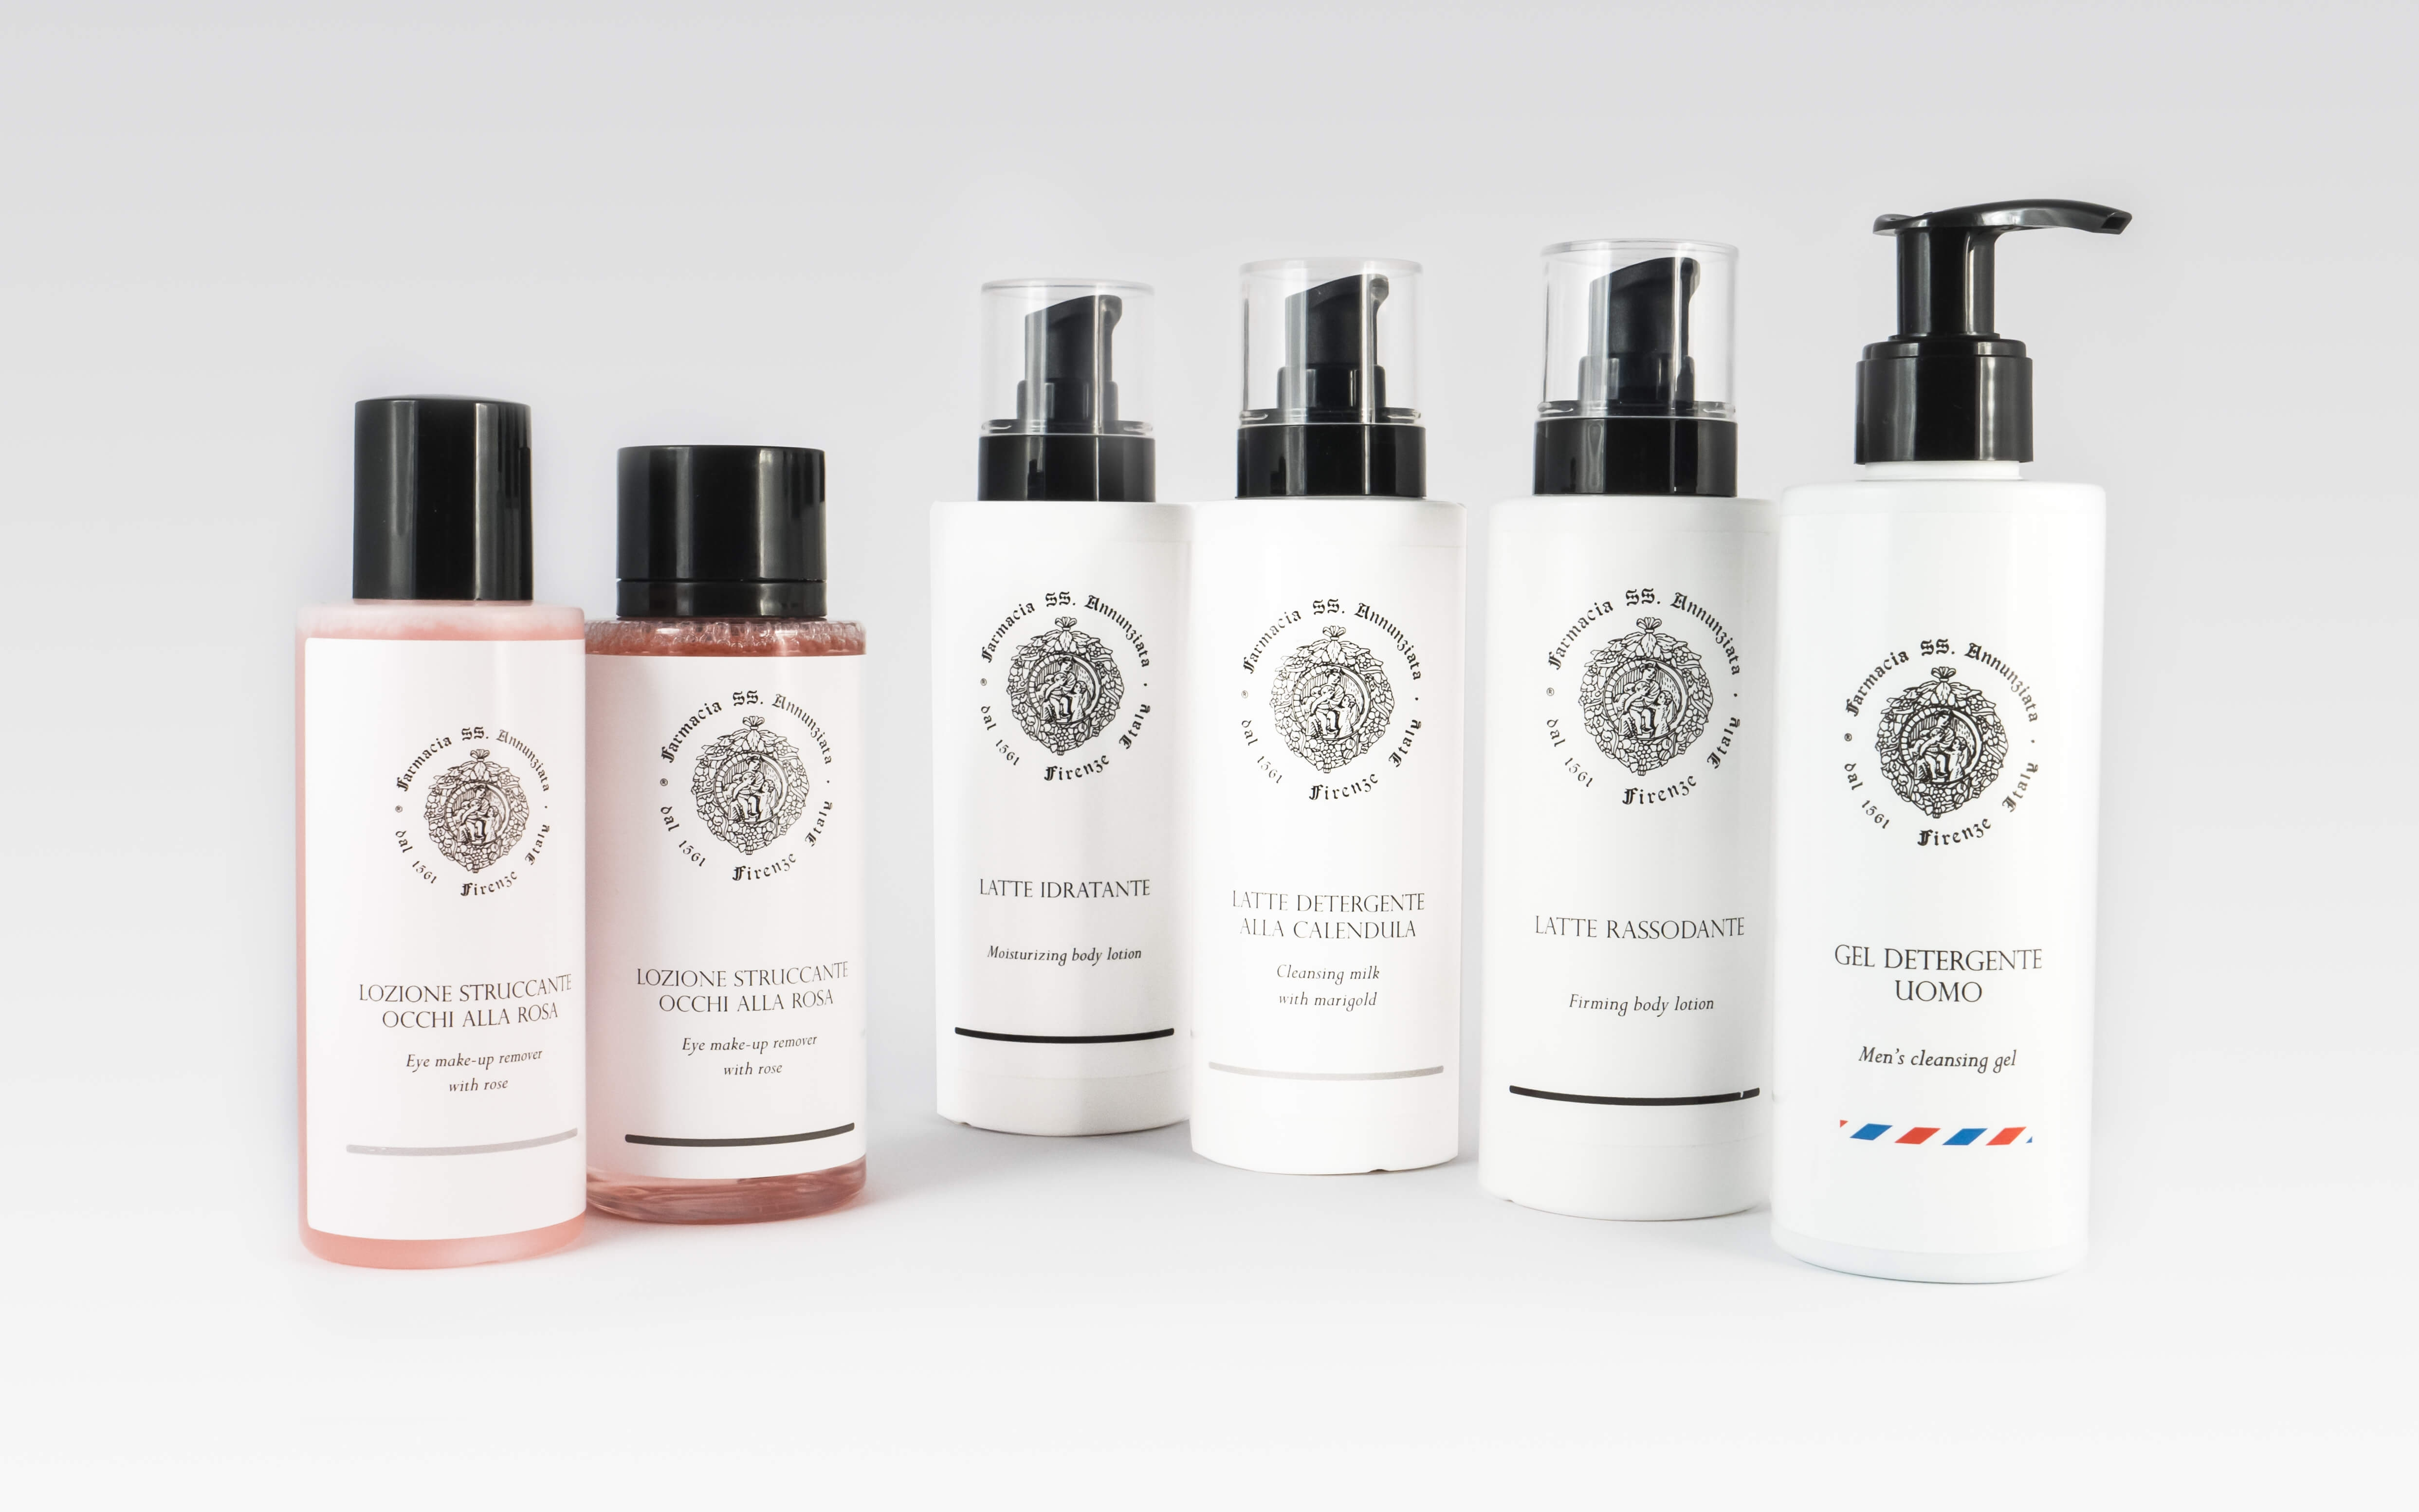 Linea Cosmetica Farmacia Annunziata - Stocksmetic Packaging